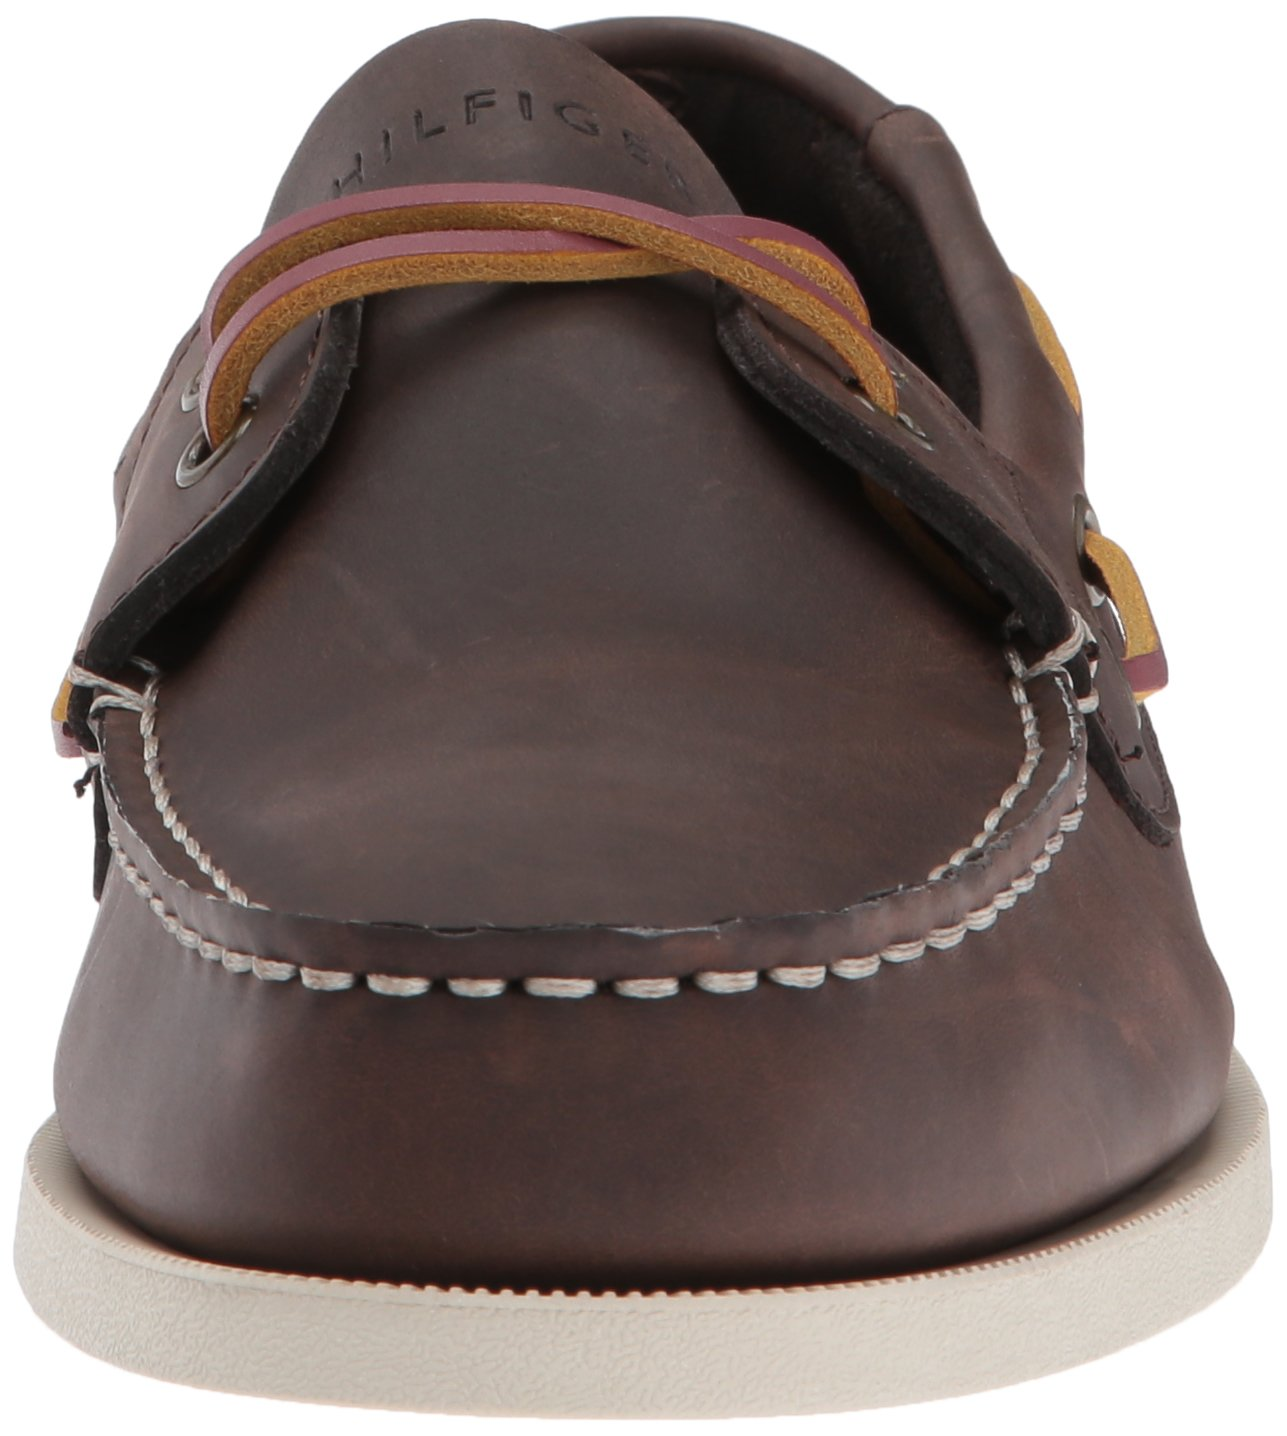 Tommy Hilfiger Men's Bowman Boat shoe,Coffee Bean,8.5 M US by Tommy Hilfiger (Image #4)